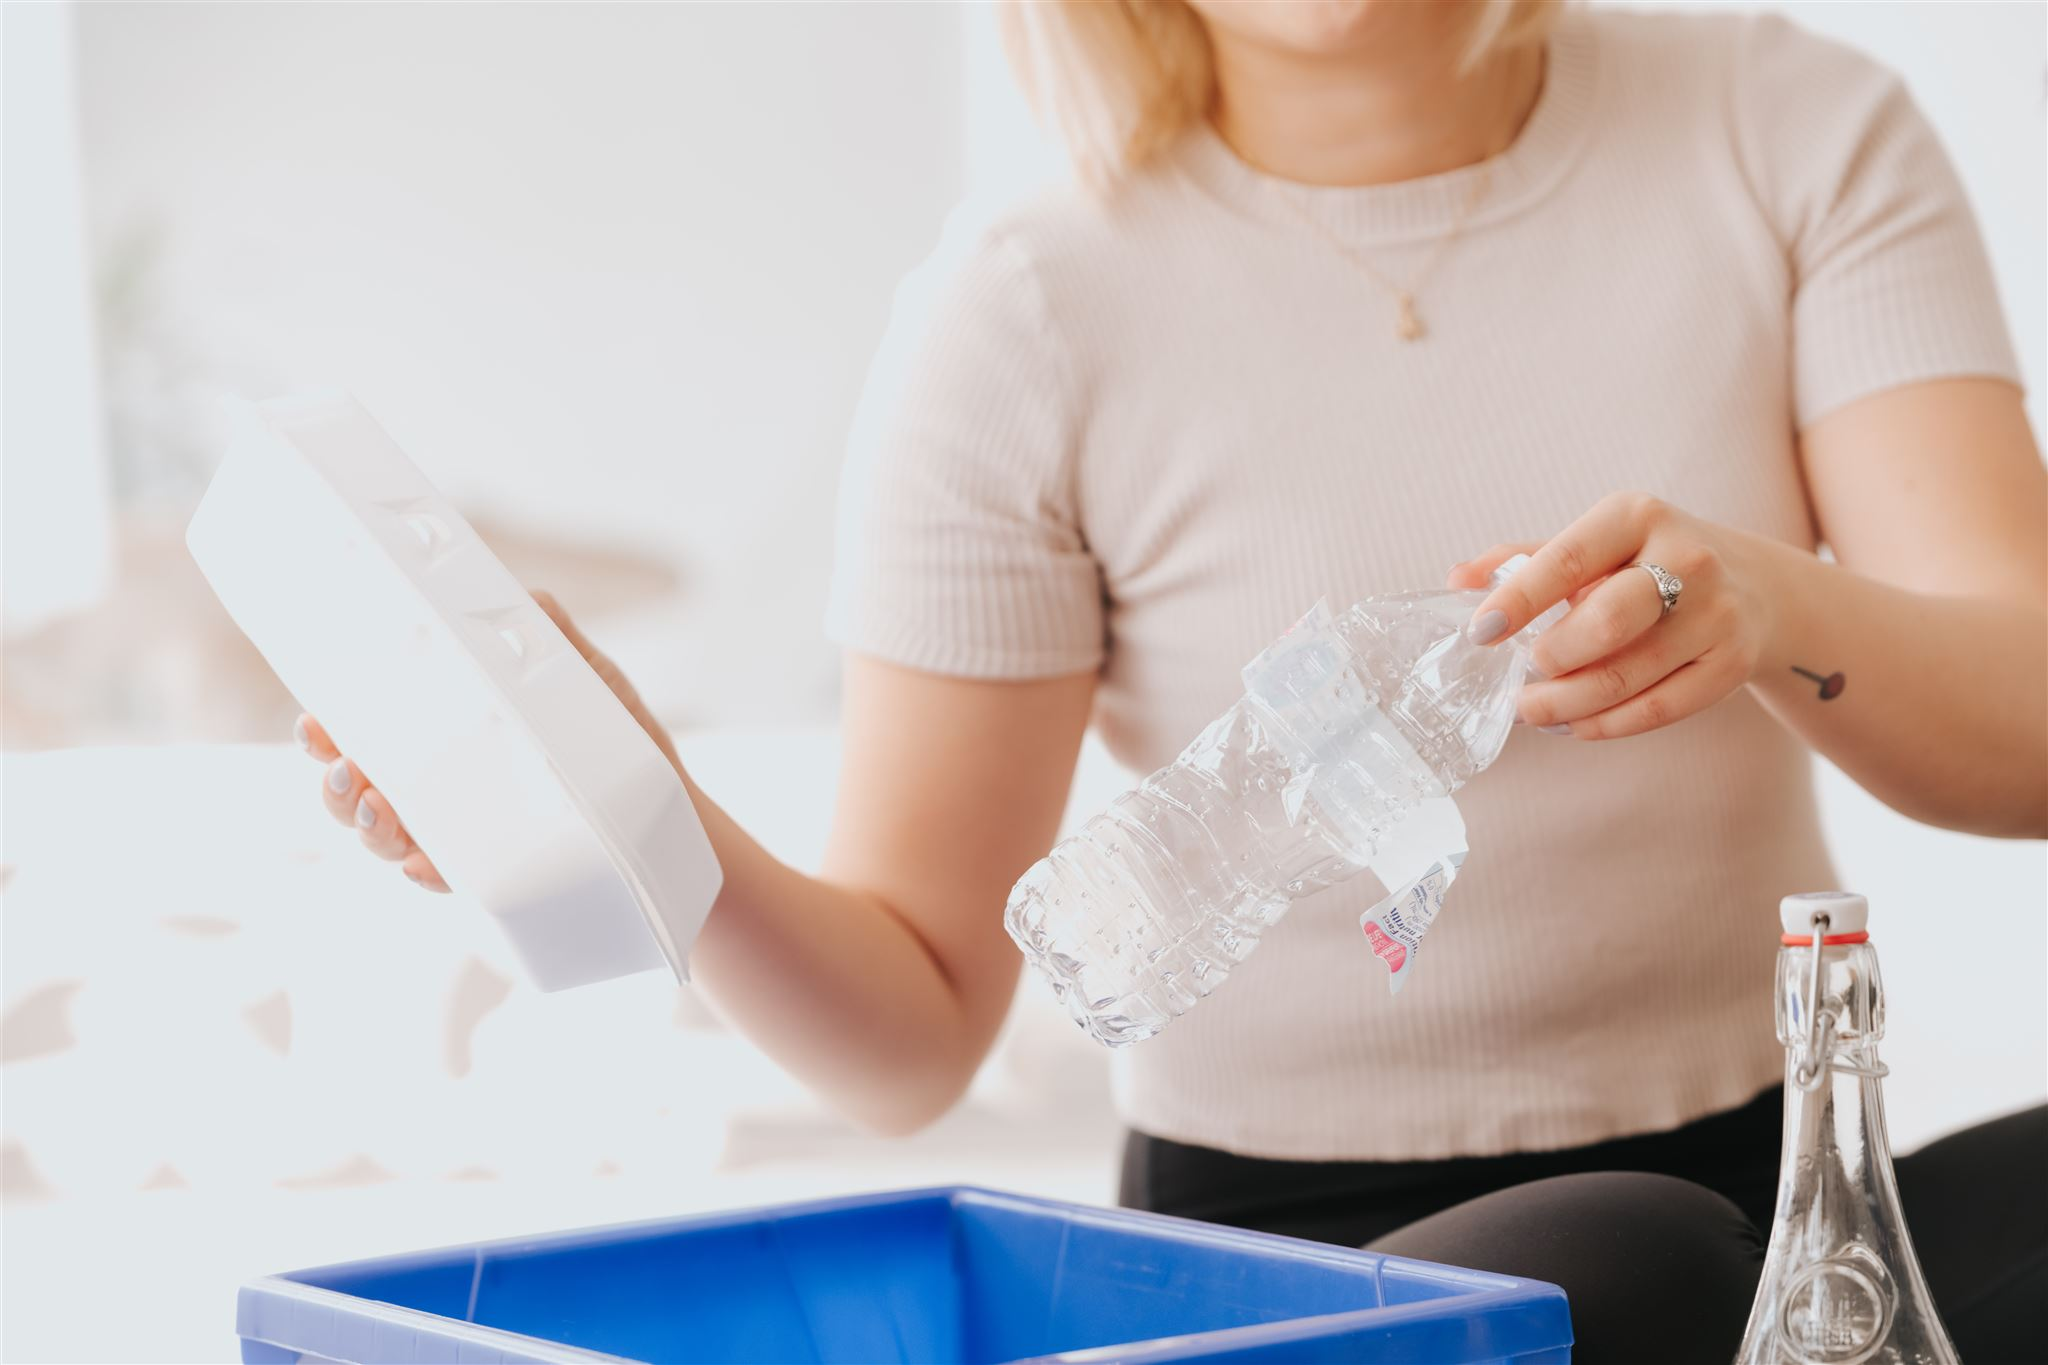 Woman holding a styrofoam container and plastic water bottle over a blue recycling bin